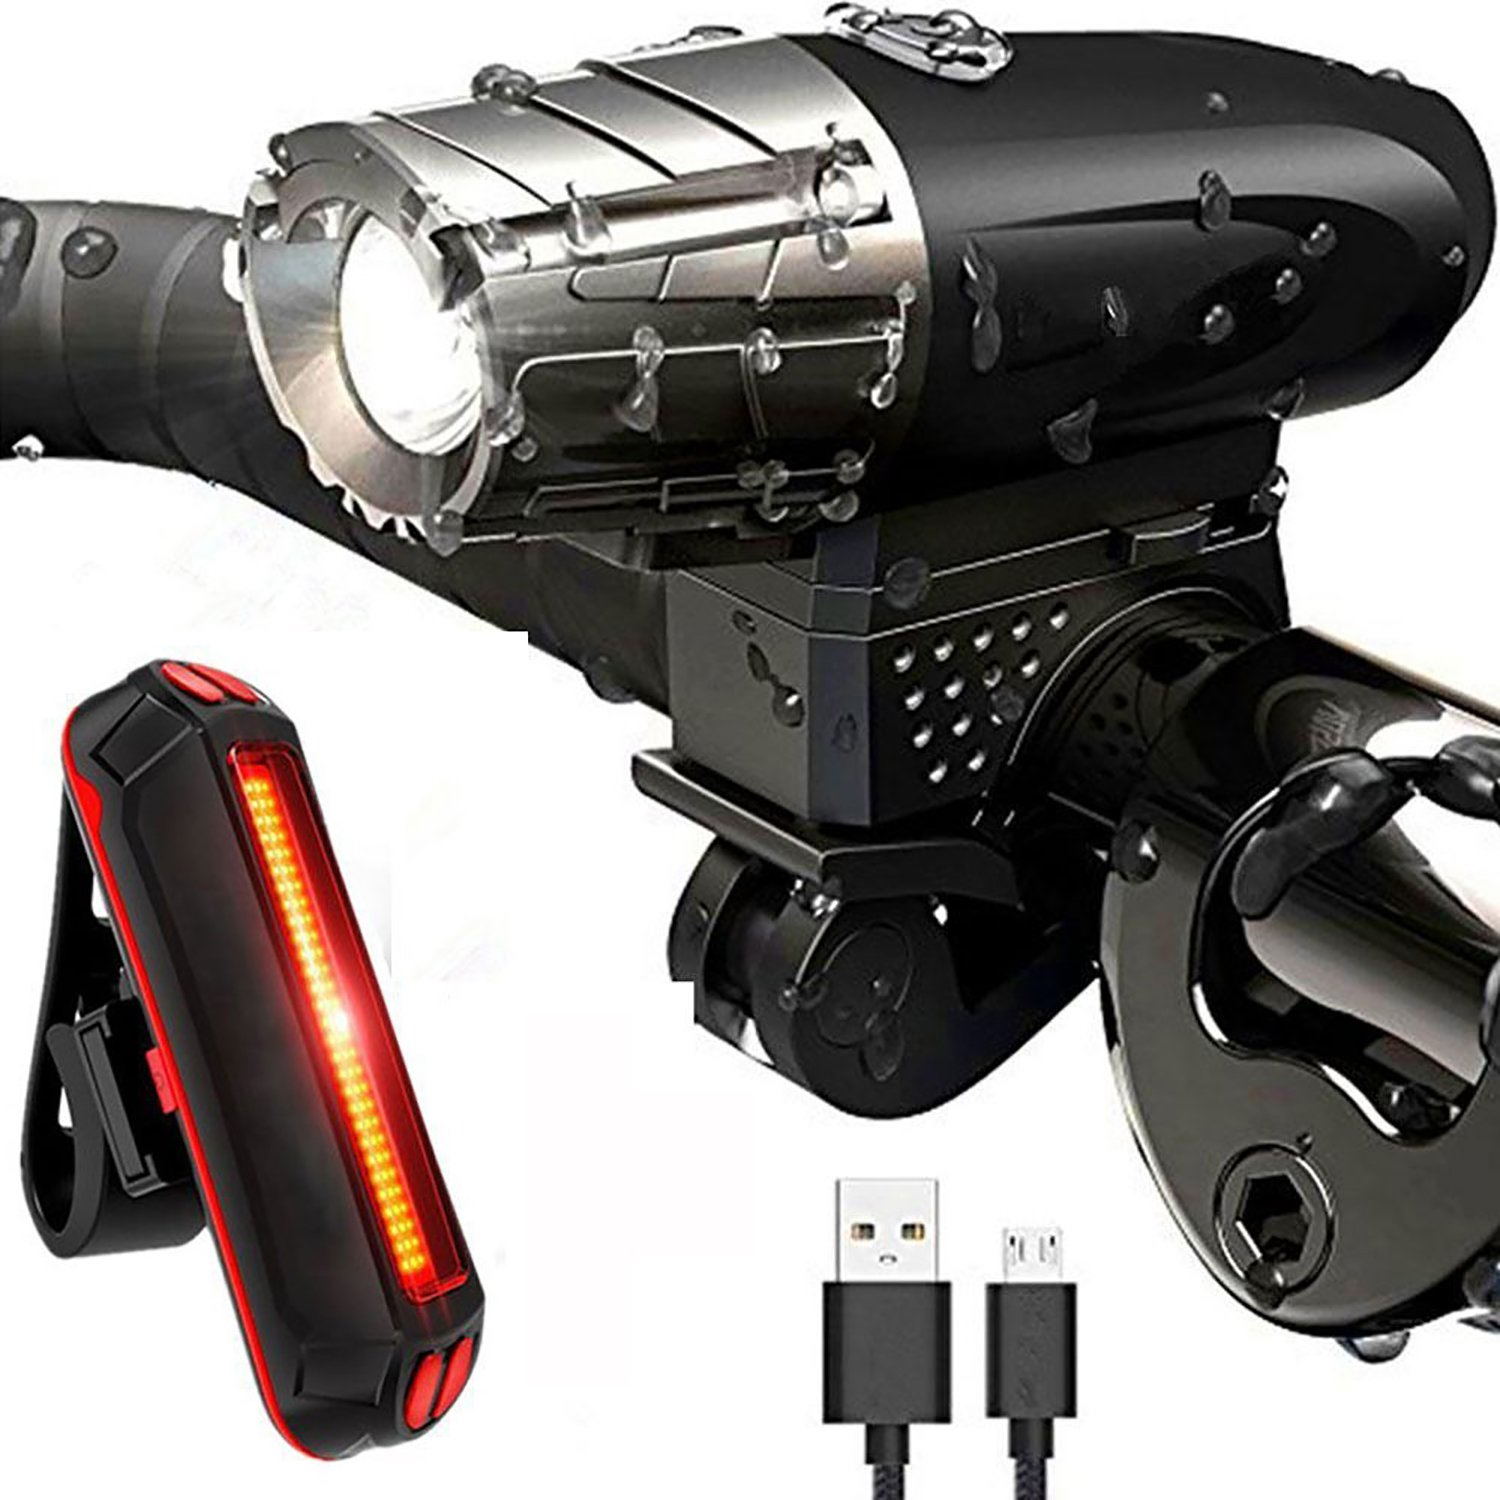 Donpandas 400 Lumens Bike Front and Rear Lights USB Rechargeable Light and Back Tail Light Set Super Bright Bicycle 3W CREE T6 LED Headlight for Optimum Cycling Safety(Black,4400mAh & IP65 Waterproof)